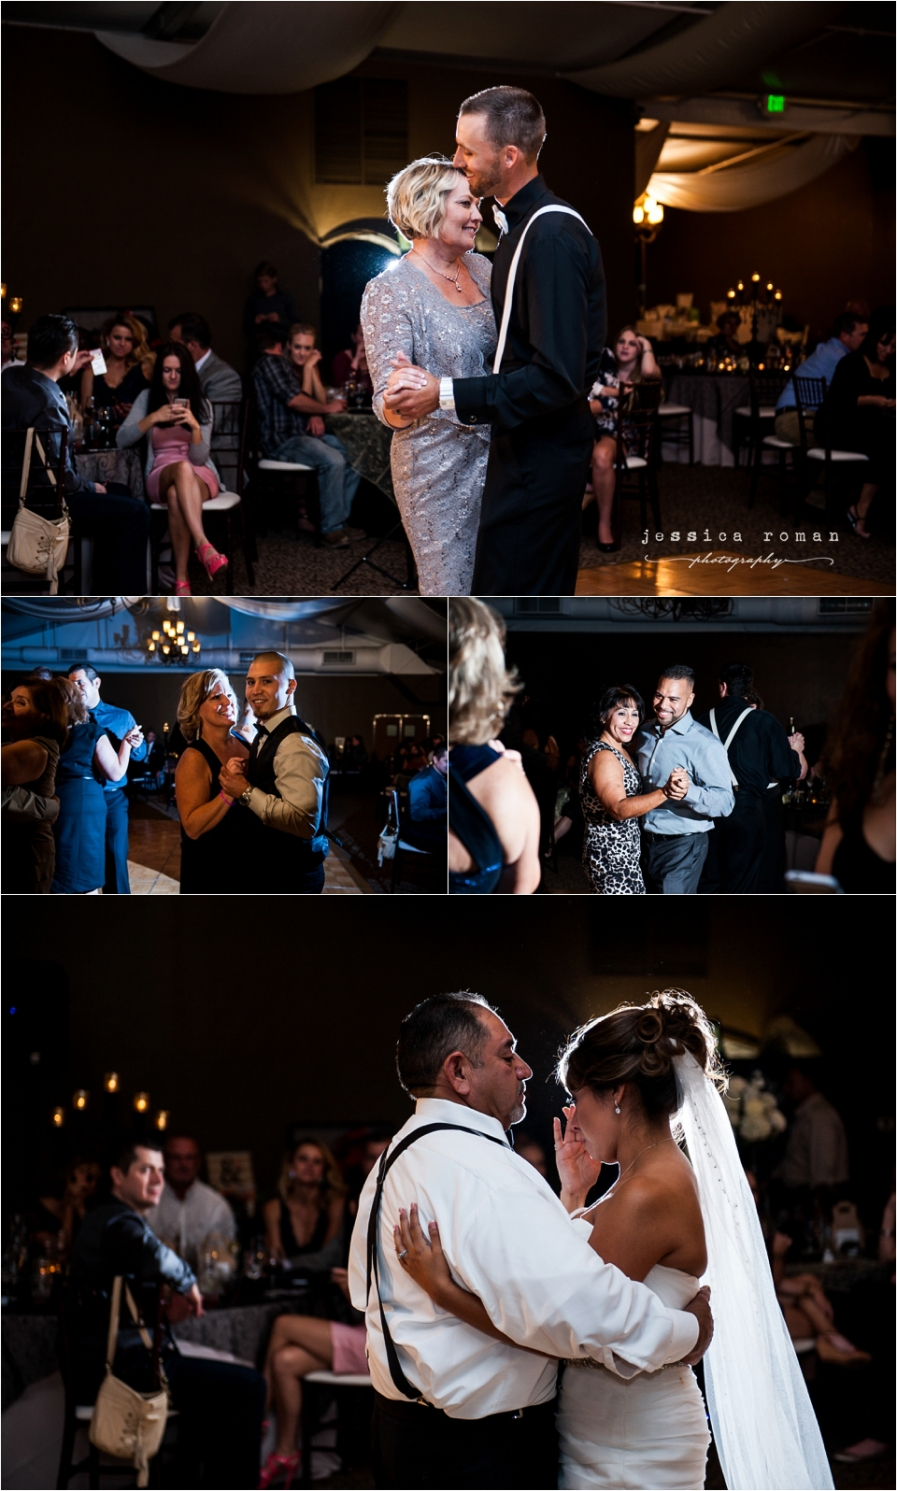 Jessica Roman Photography: Nicole & Eric's Wedding at Morgan Creek in Roseville, CA